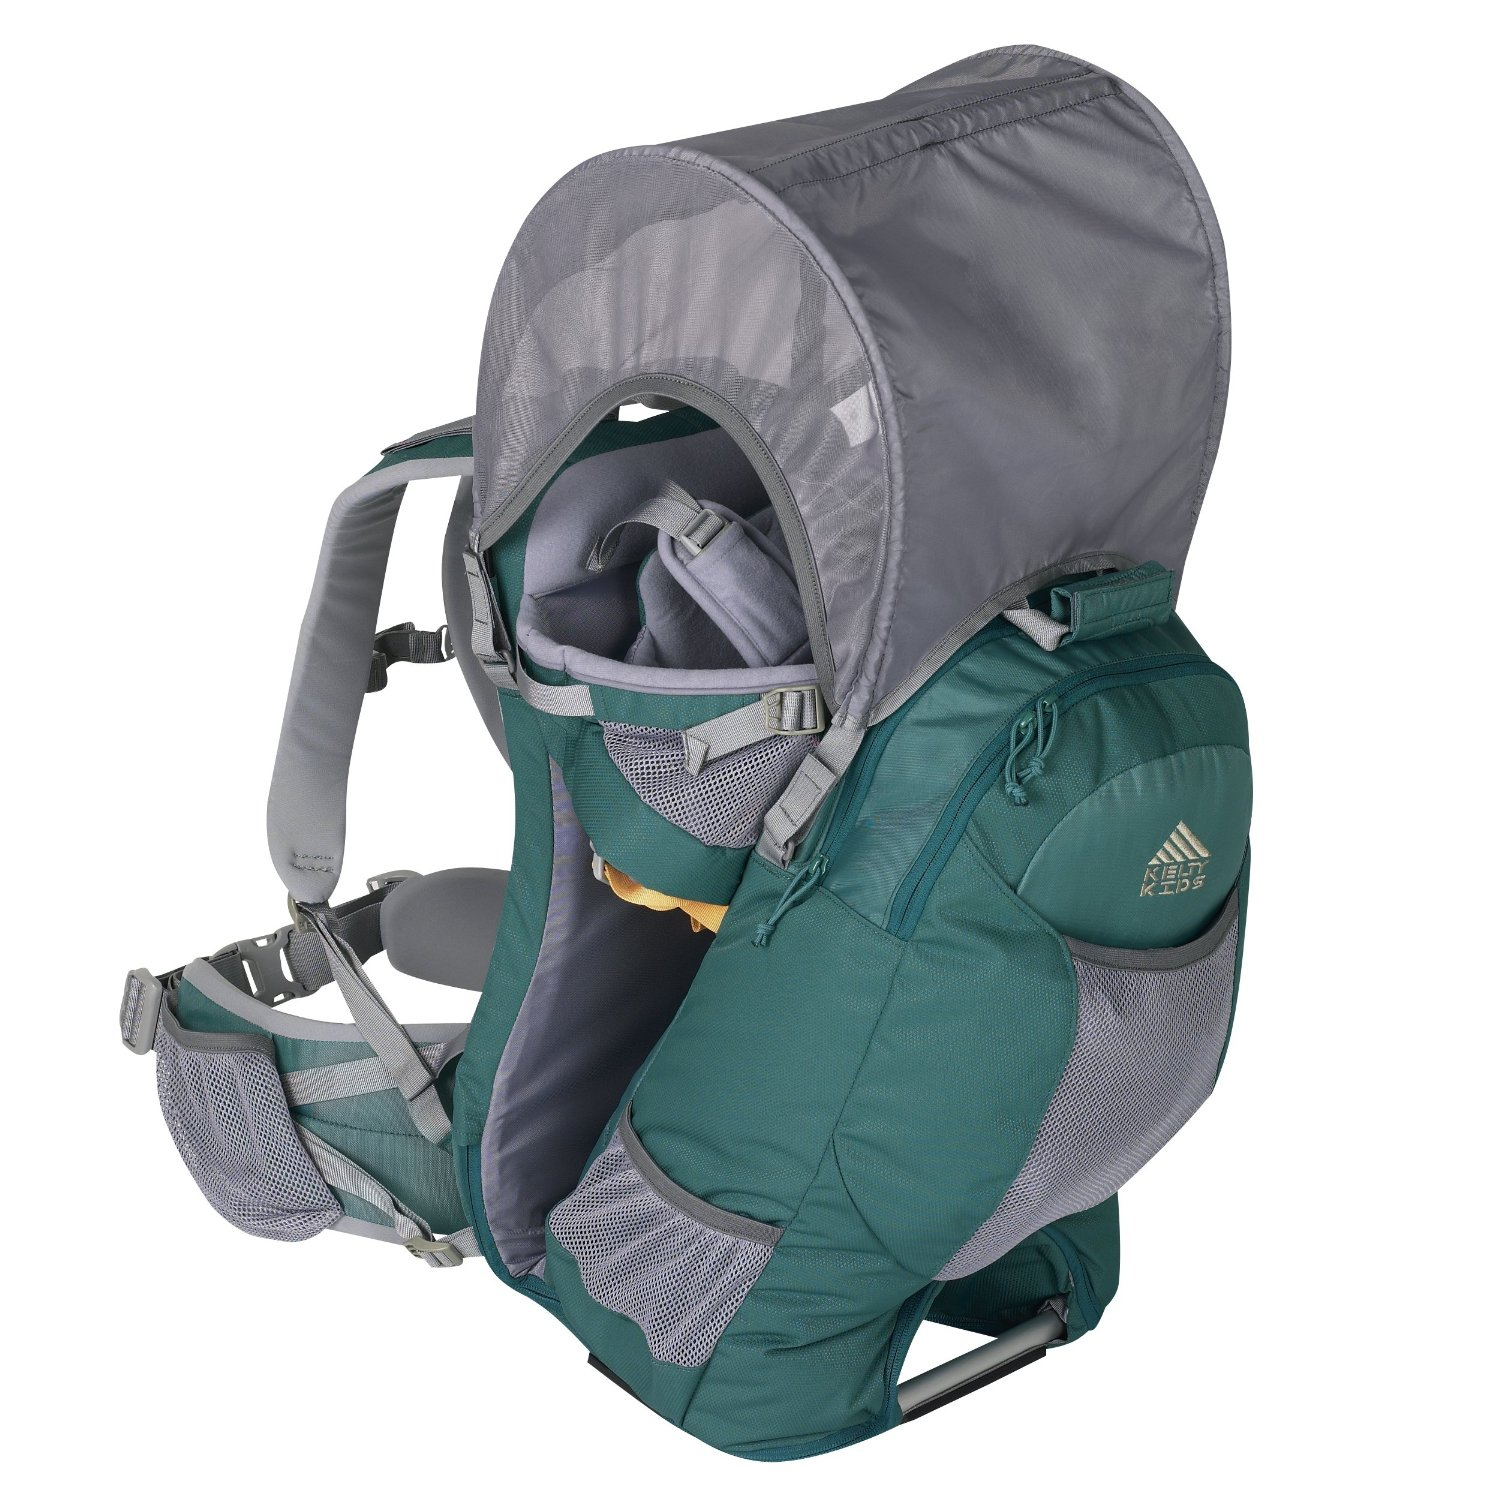 kelty-baby-backpack